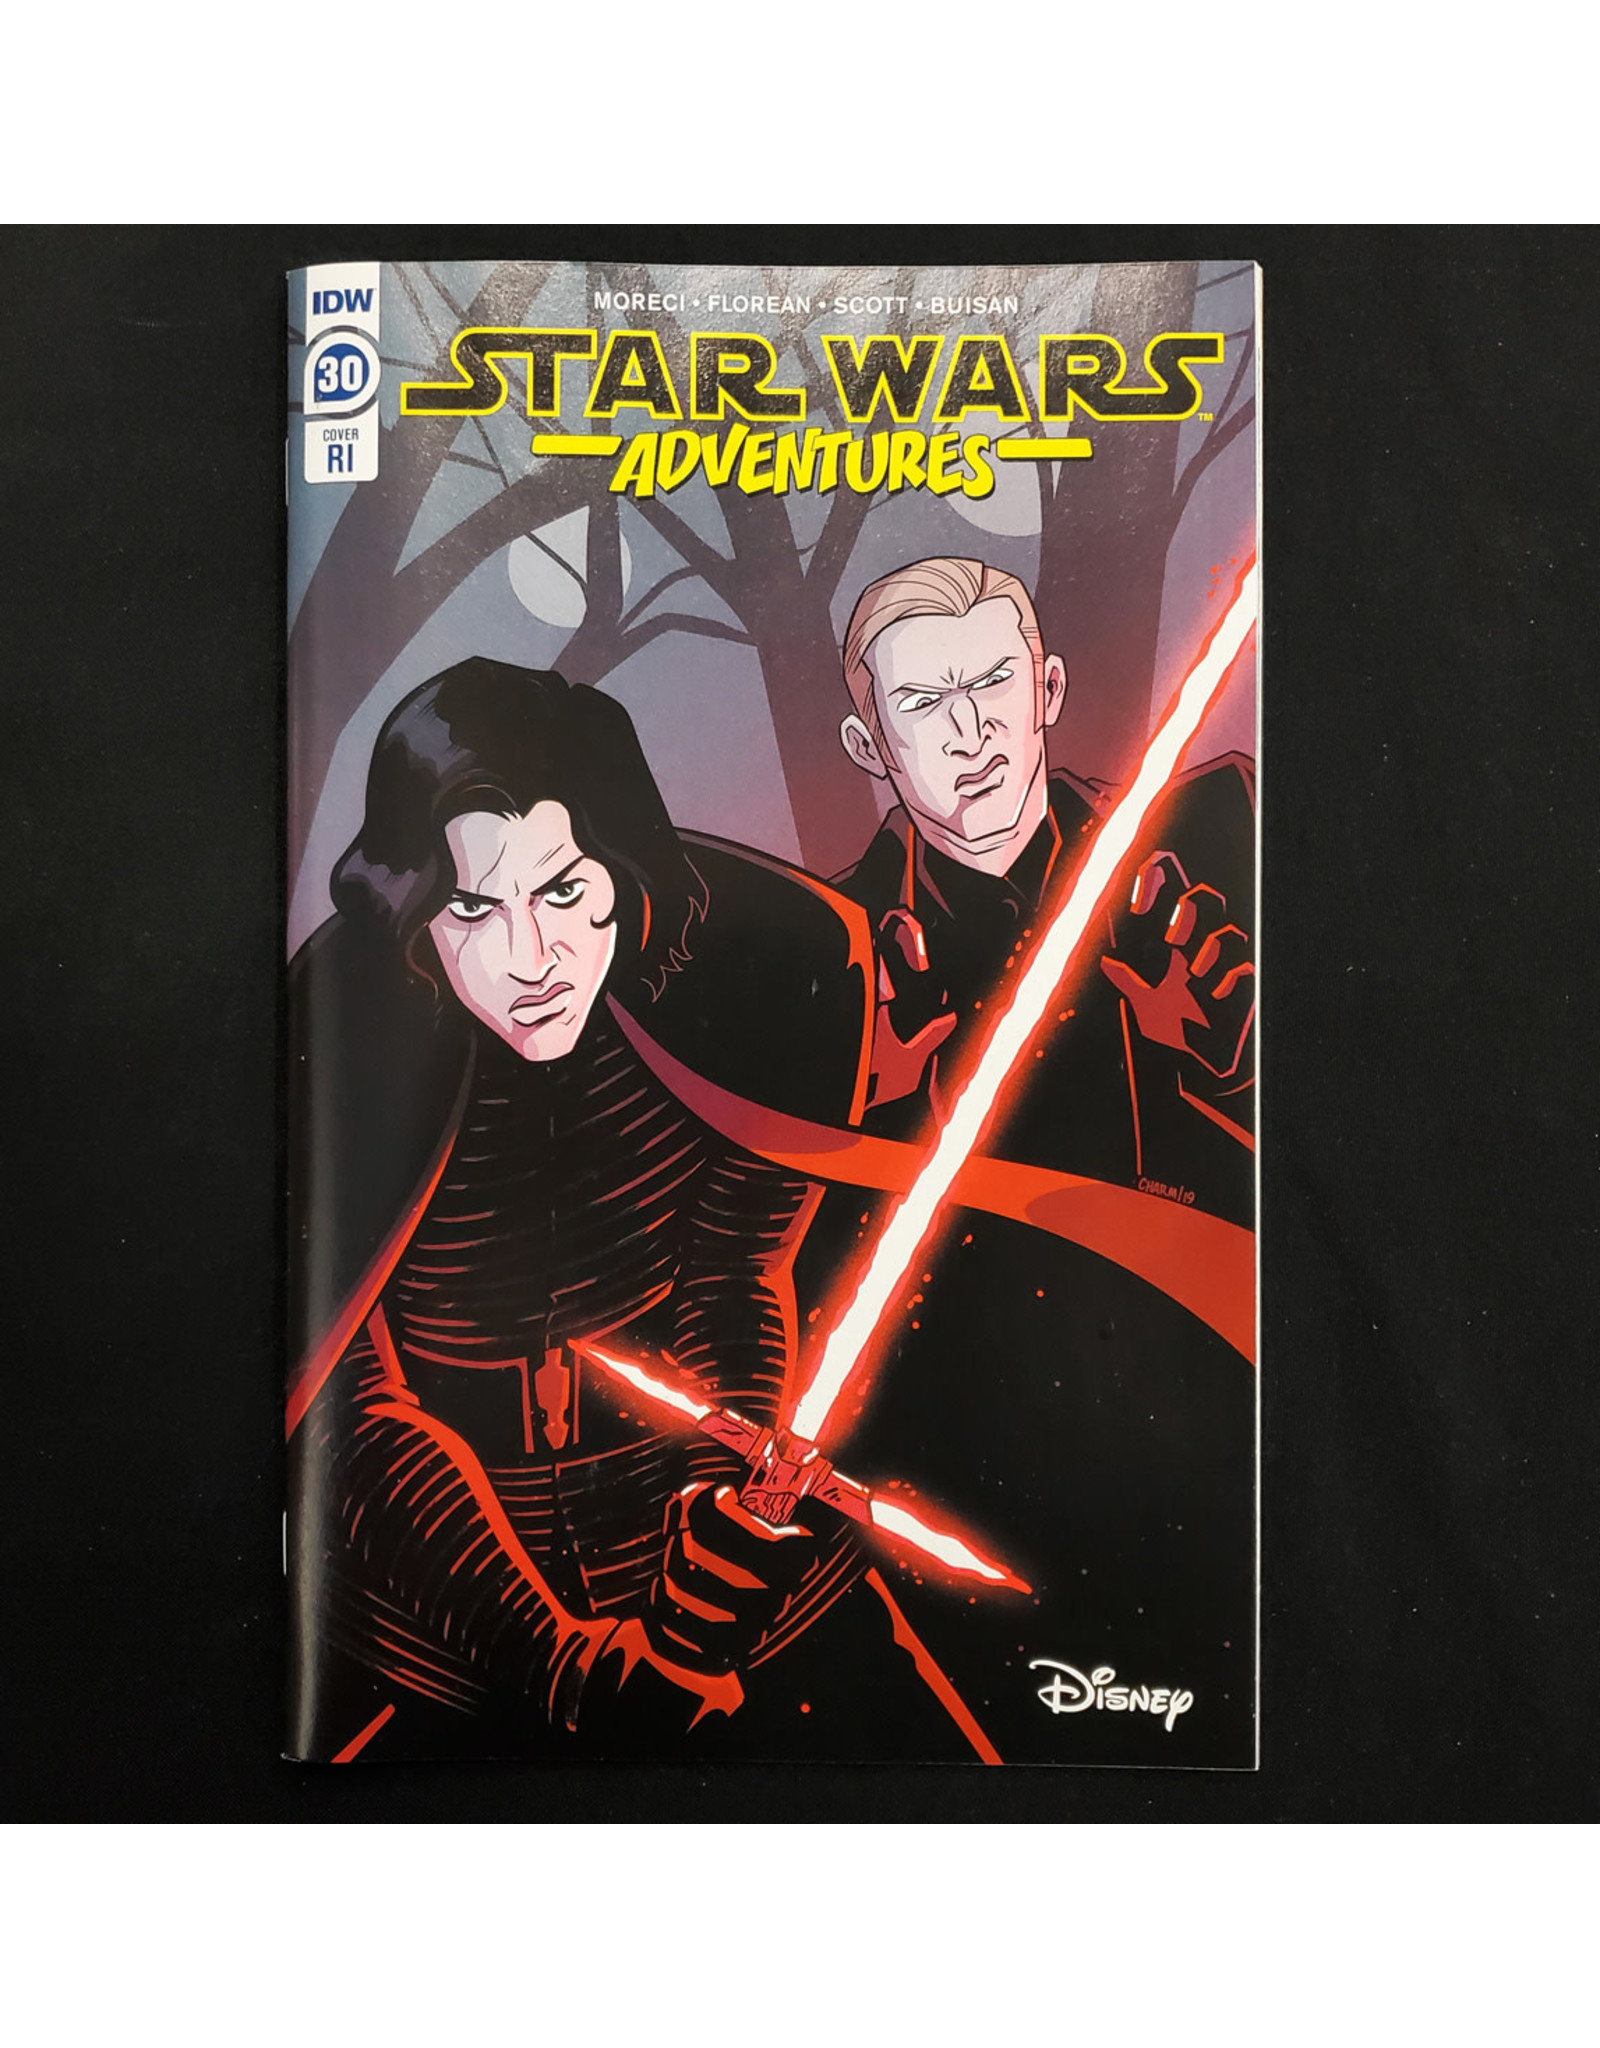 IDW PUBLISHING STAR WARS ADVENTURES #30 10 COPY INCENTIVE CHARM VARIANT